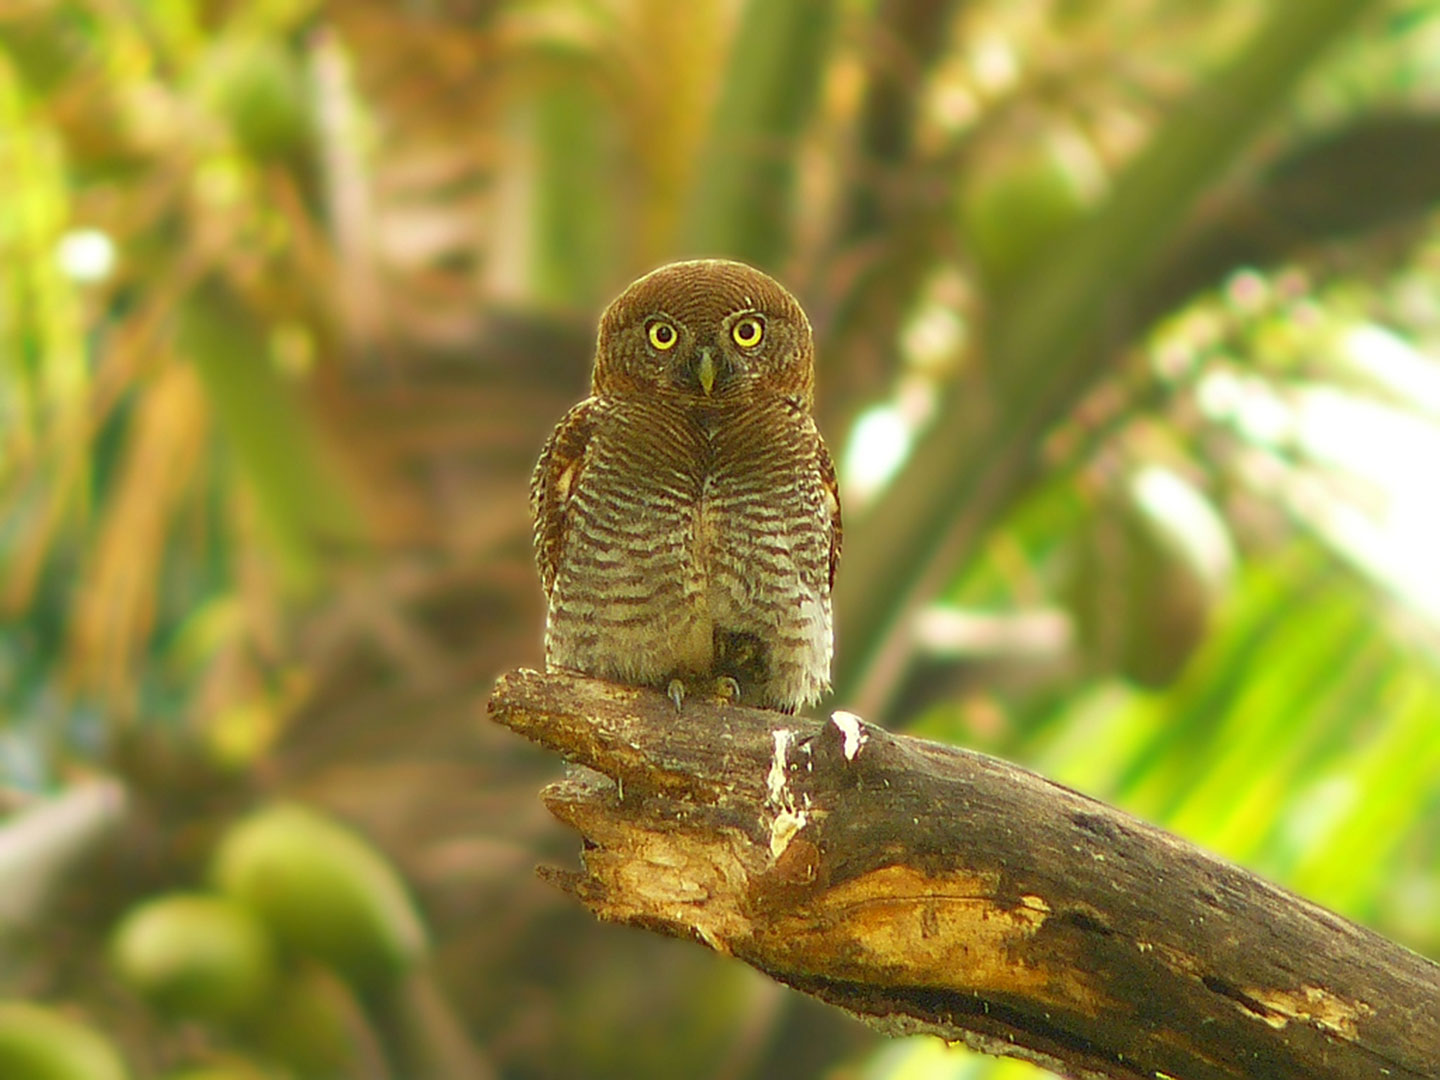 Owlet Blending in With Trees